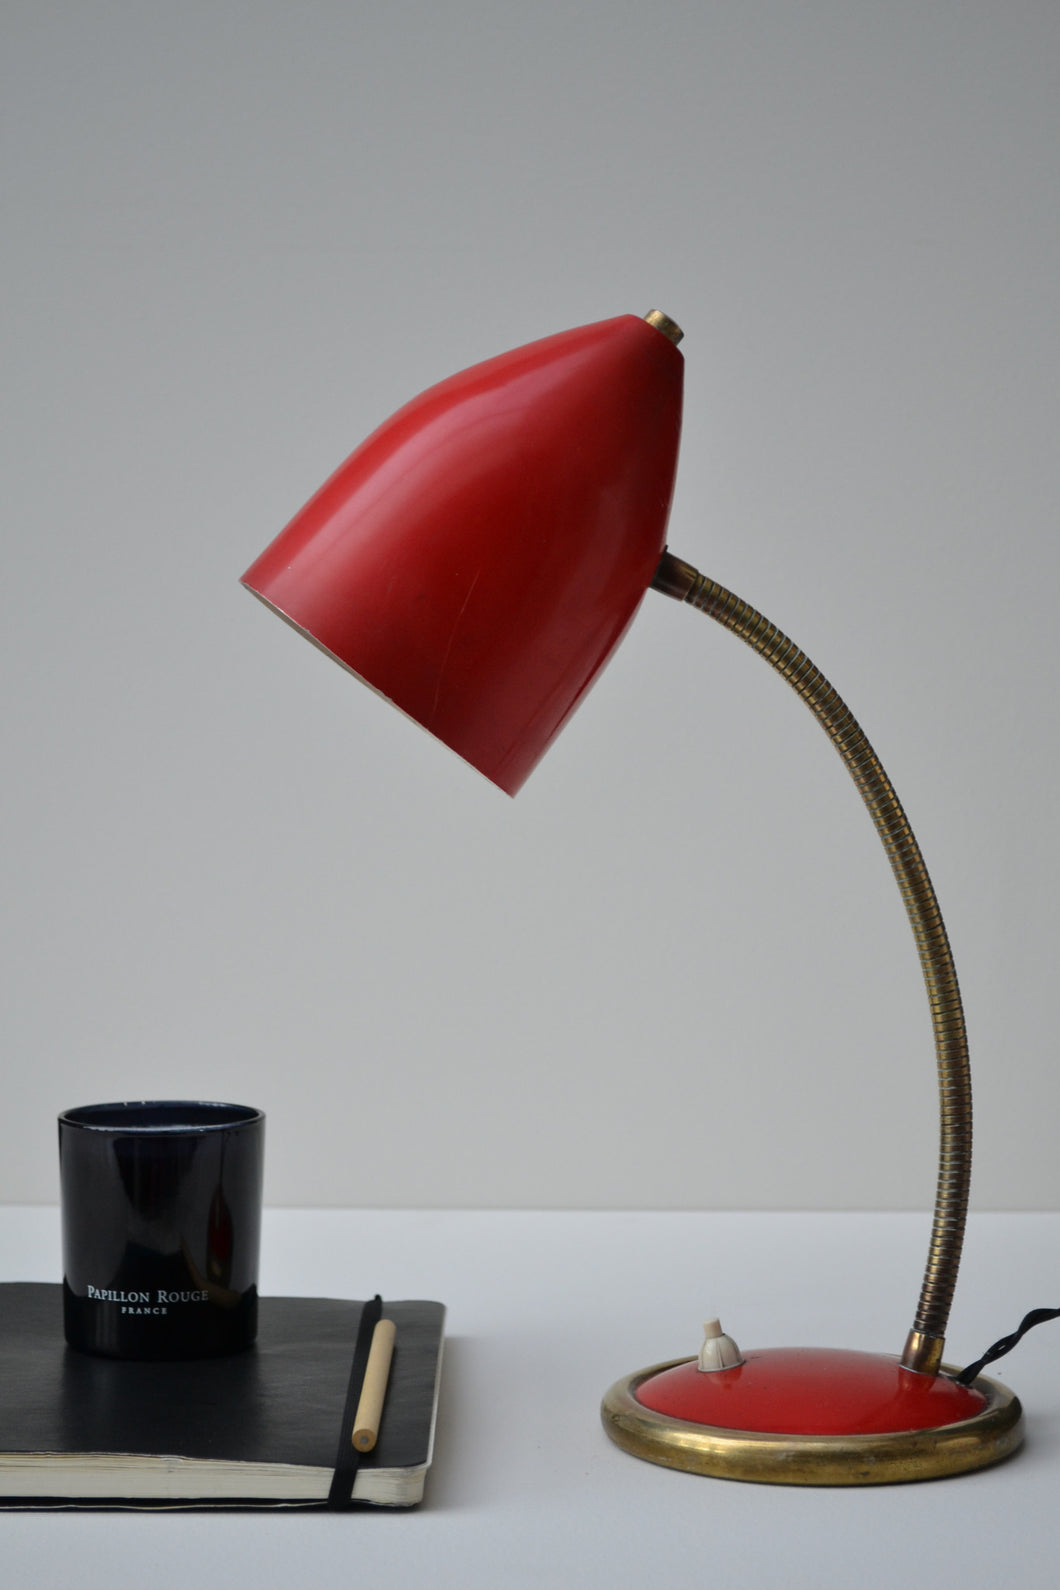 Vintage French Desk Lamp - 1960's - SOLD